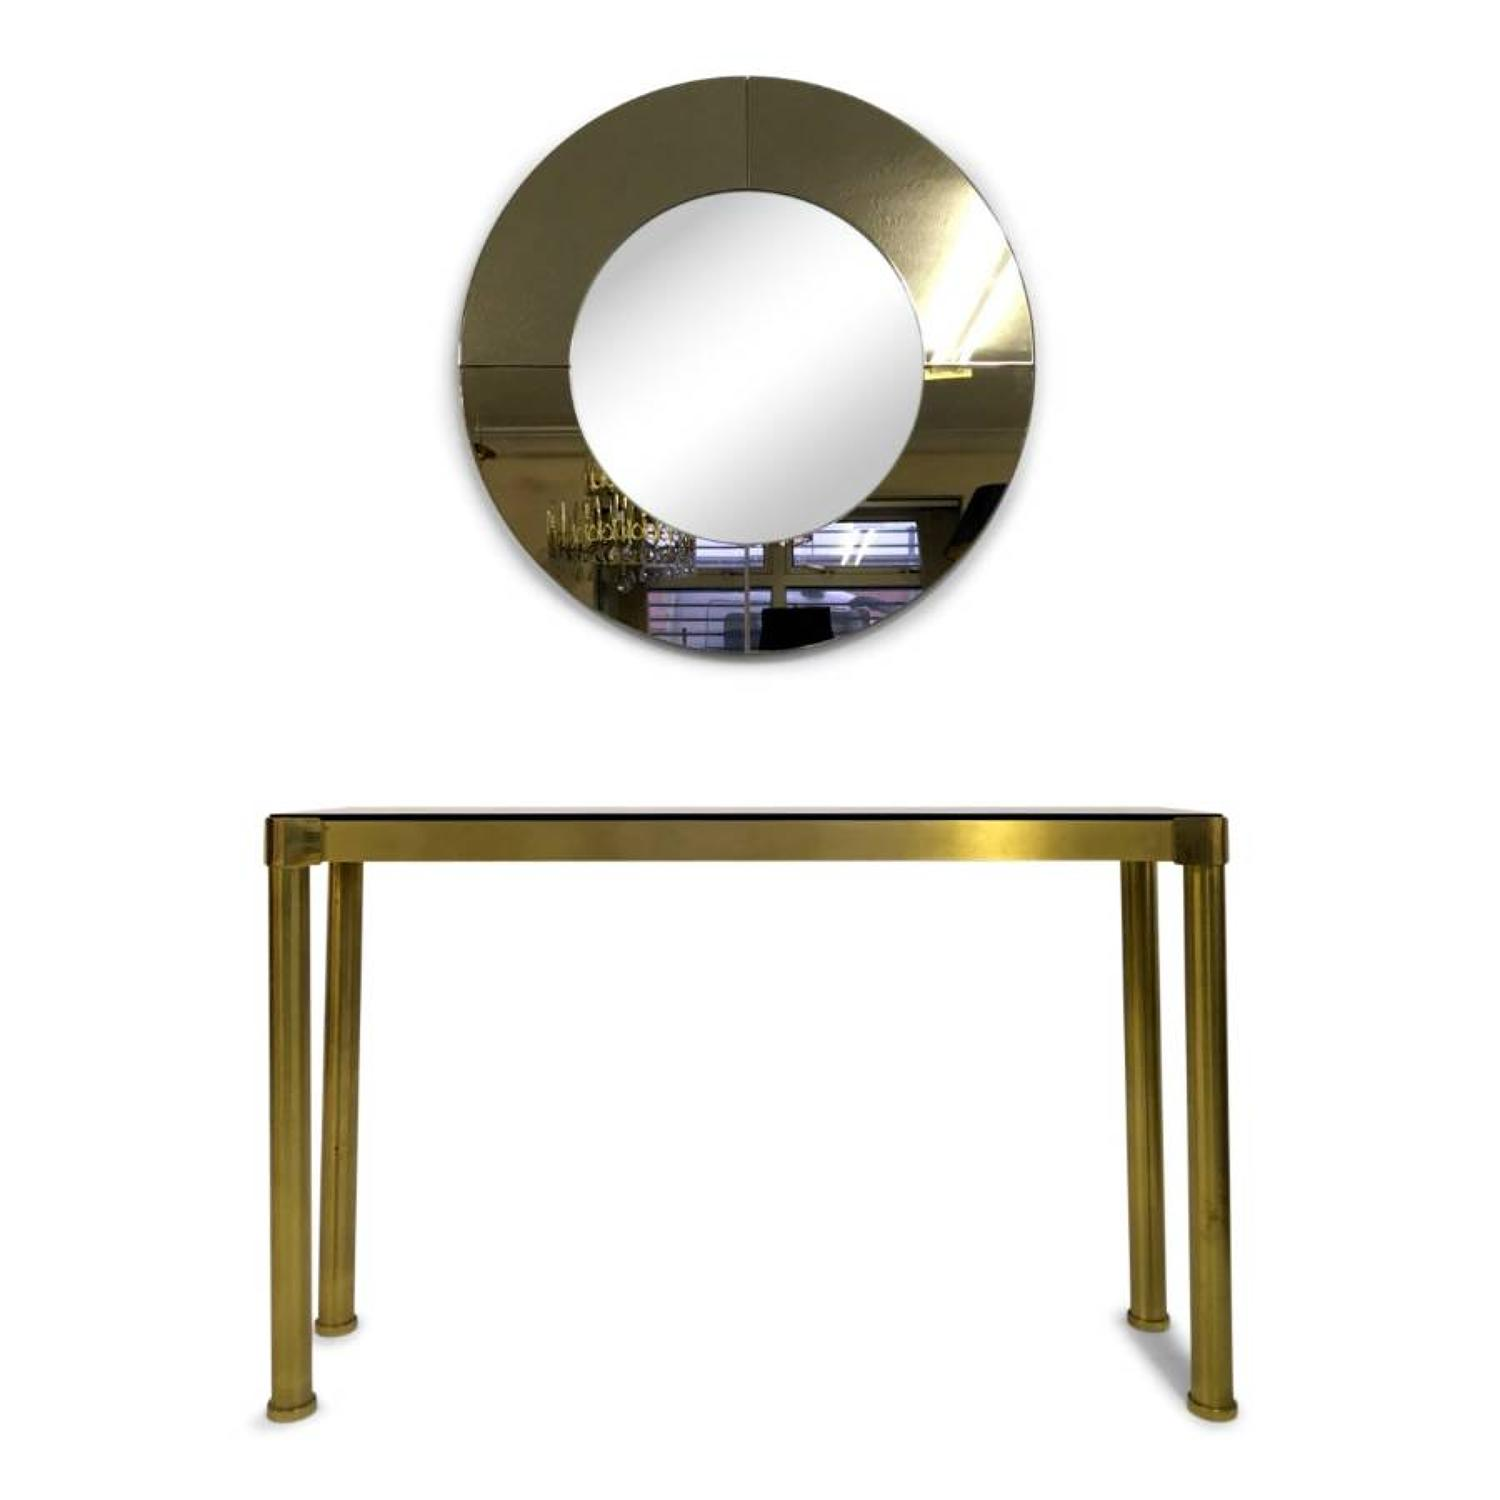 1970s Italian brass console table with mirror